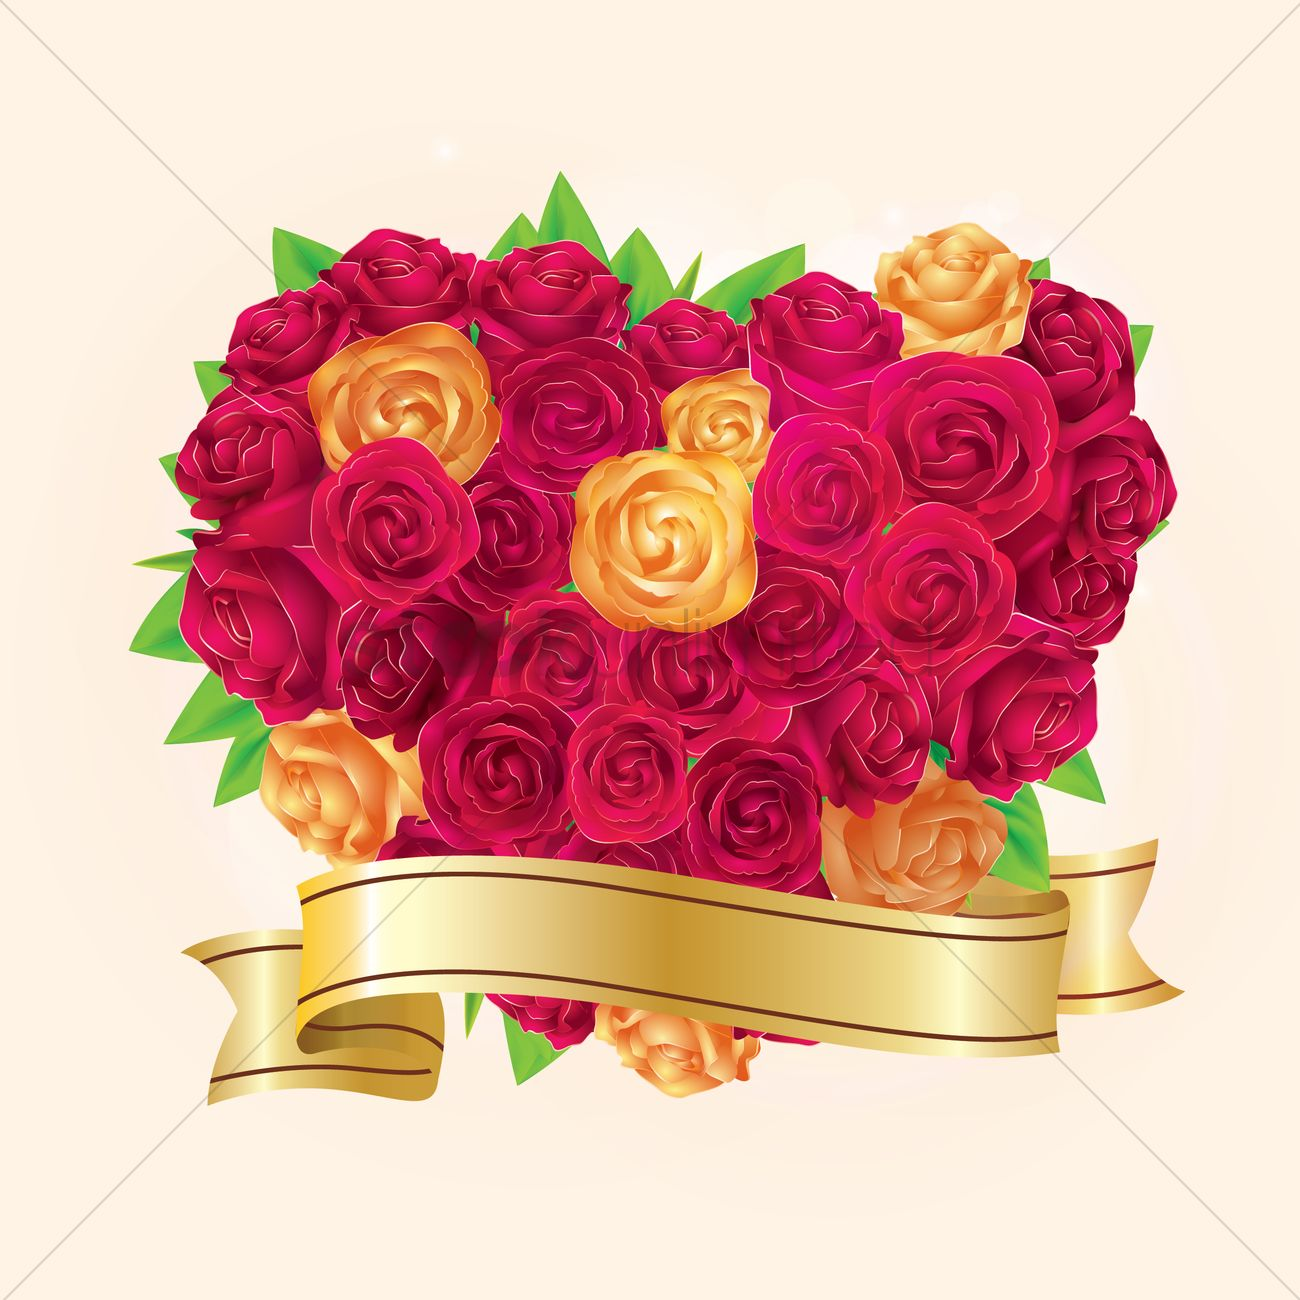 Heart shaped rose bouquet Vector Image - 1810569 | StockUnlimited